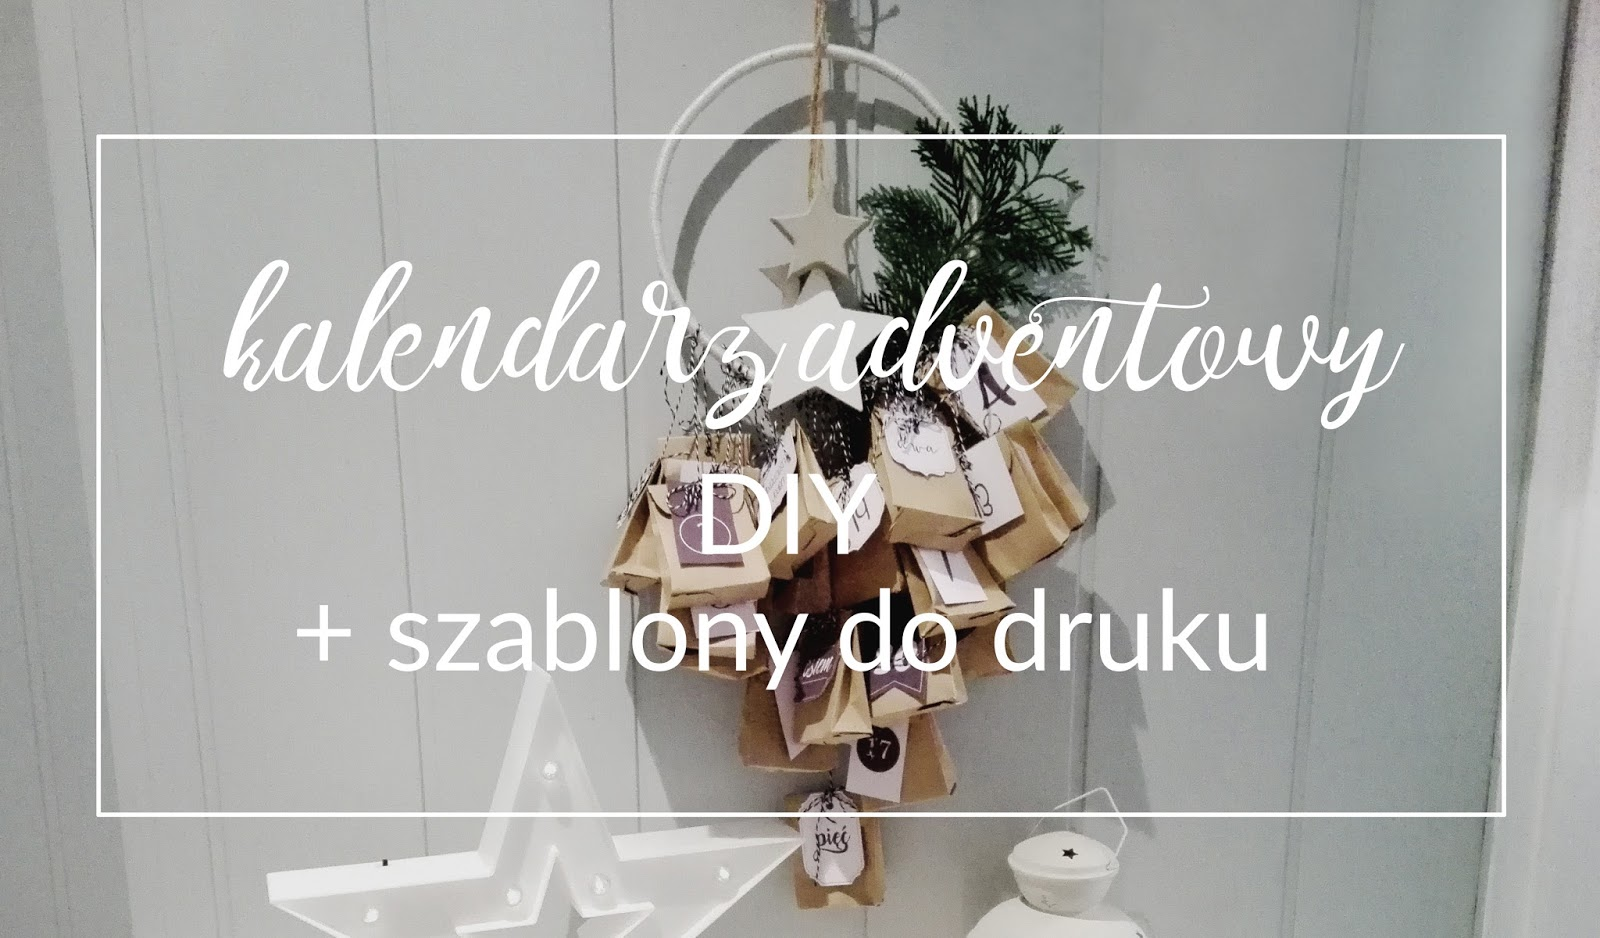 kelandarz adwentowy, advent calendar, diy, printable, freebie, advent calendar diy, hancymonka, kalendarz adwentowy skandynawski, scandi style, homedecor, christmas decor, kalendarz adwentowy łapacz snów